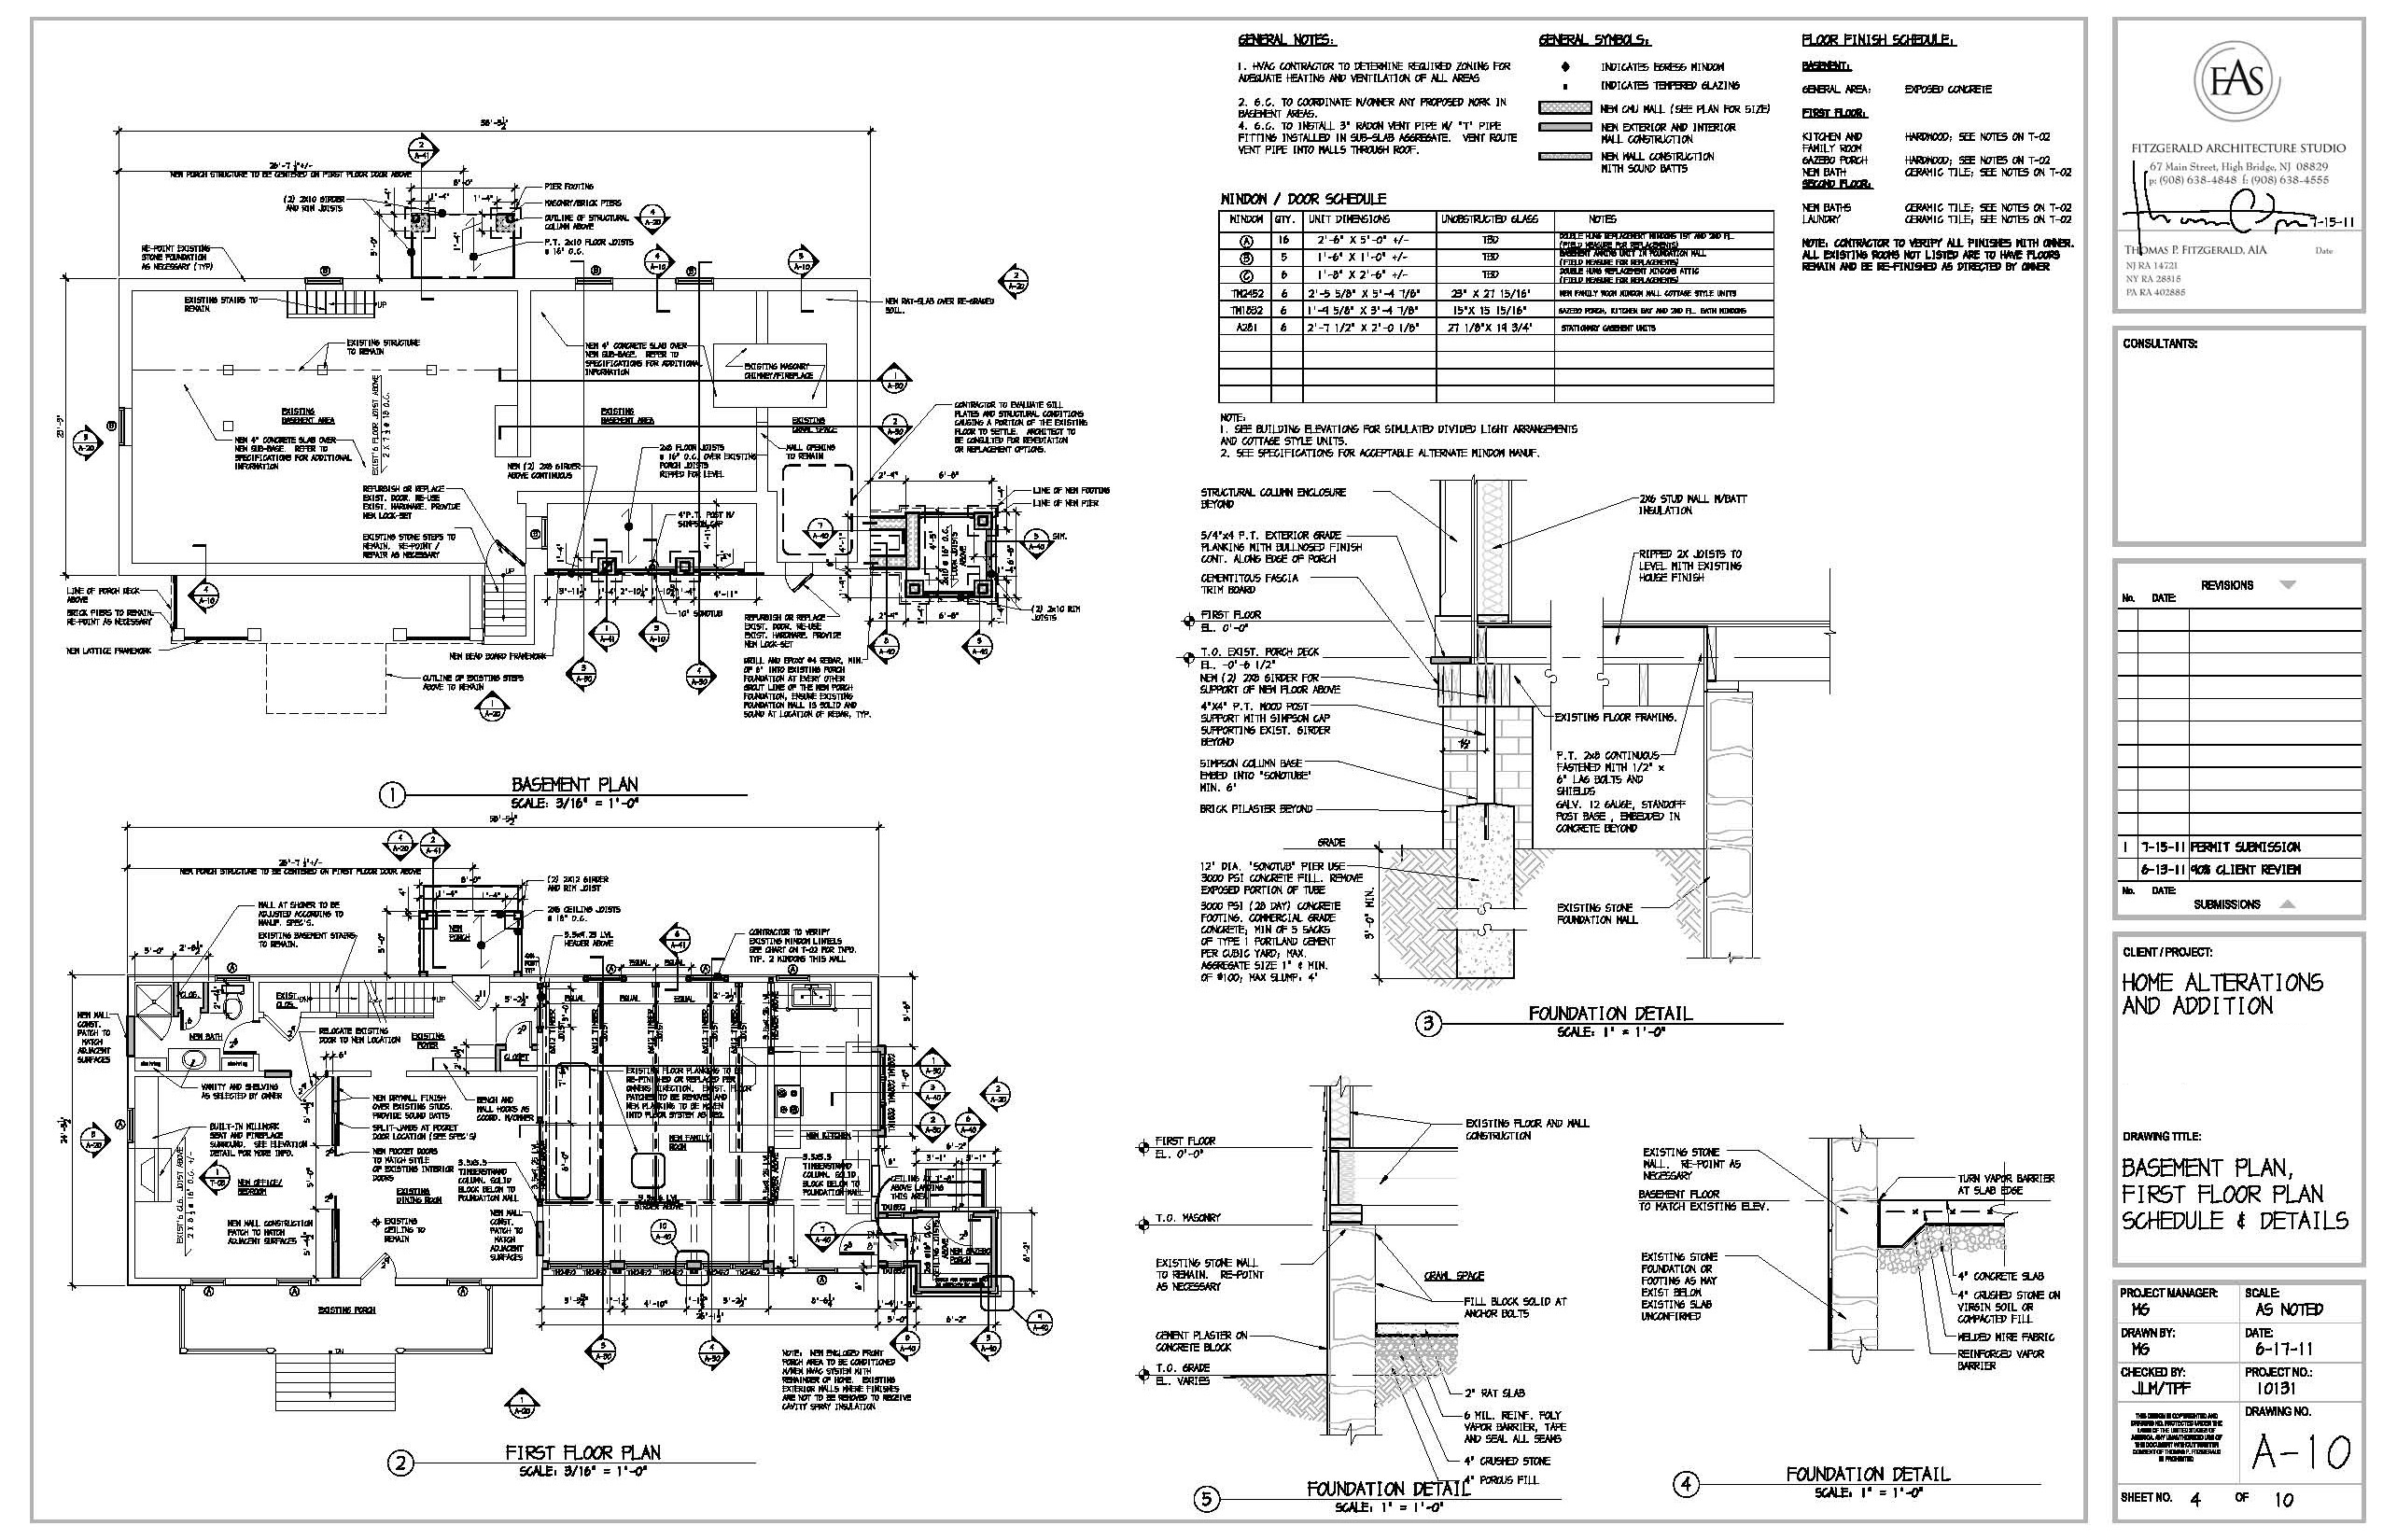 Construction documents fitzgeraldstudiosblog for Architectural plans and permits